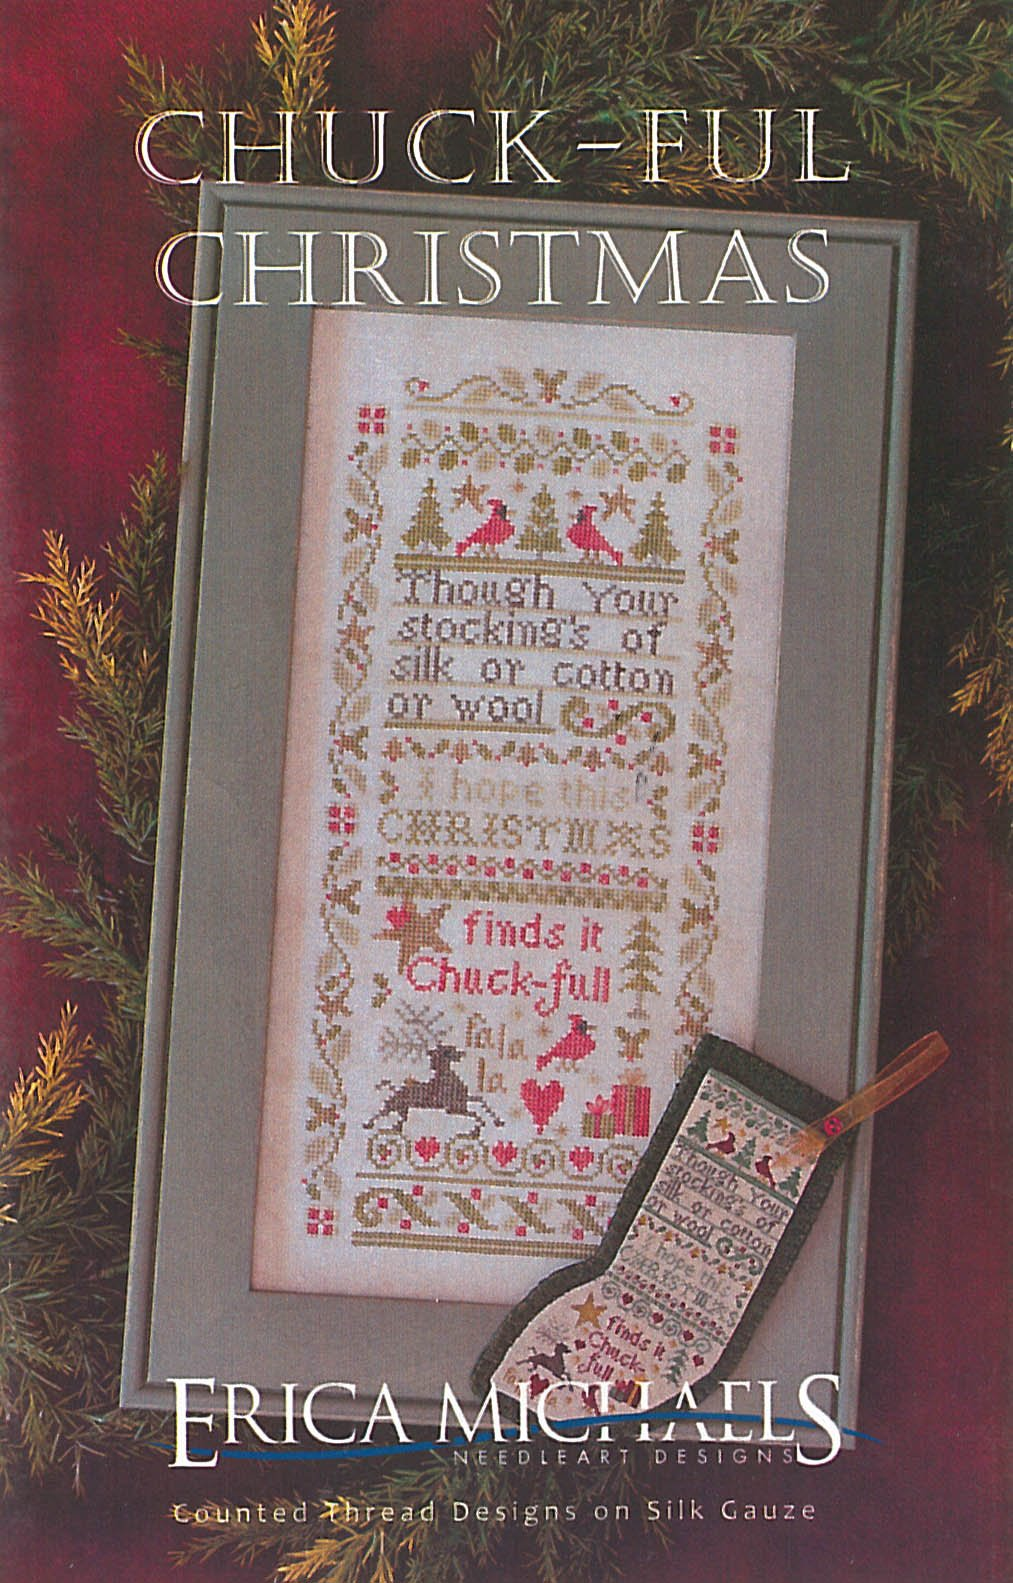 Chuck-ful Christmas ~ Erica Michaels